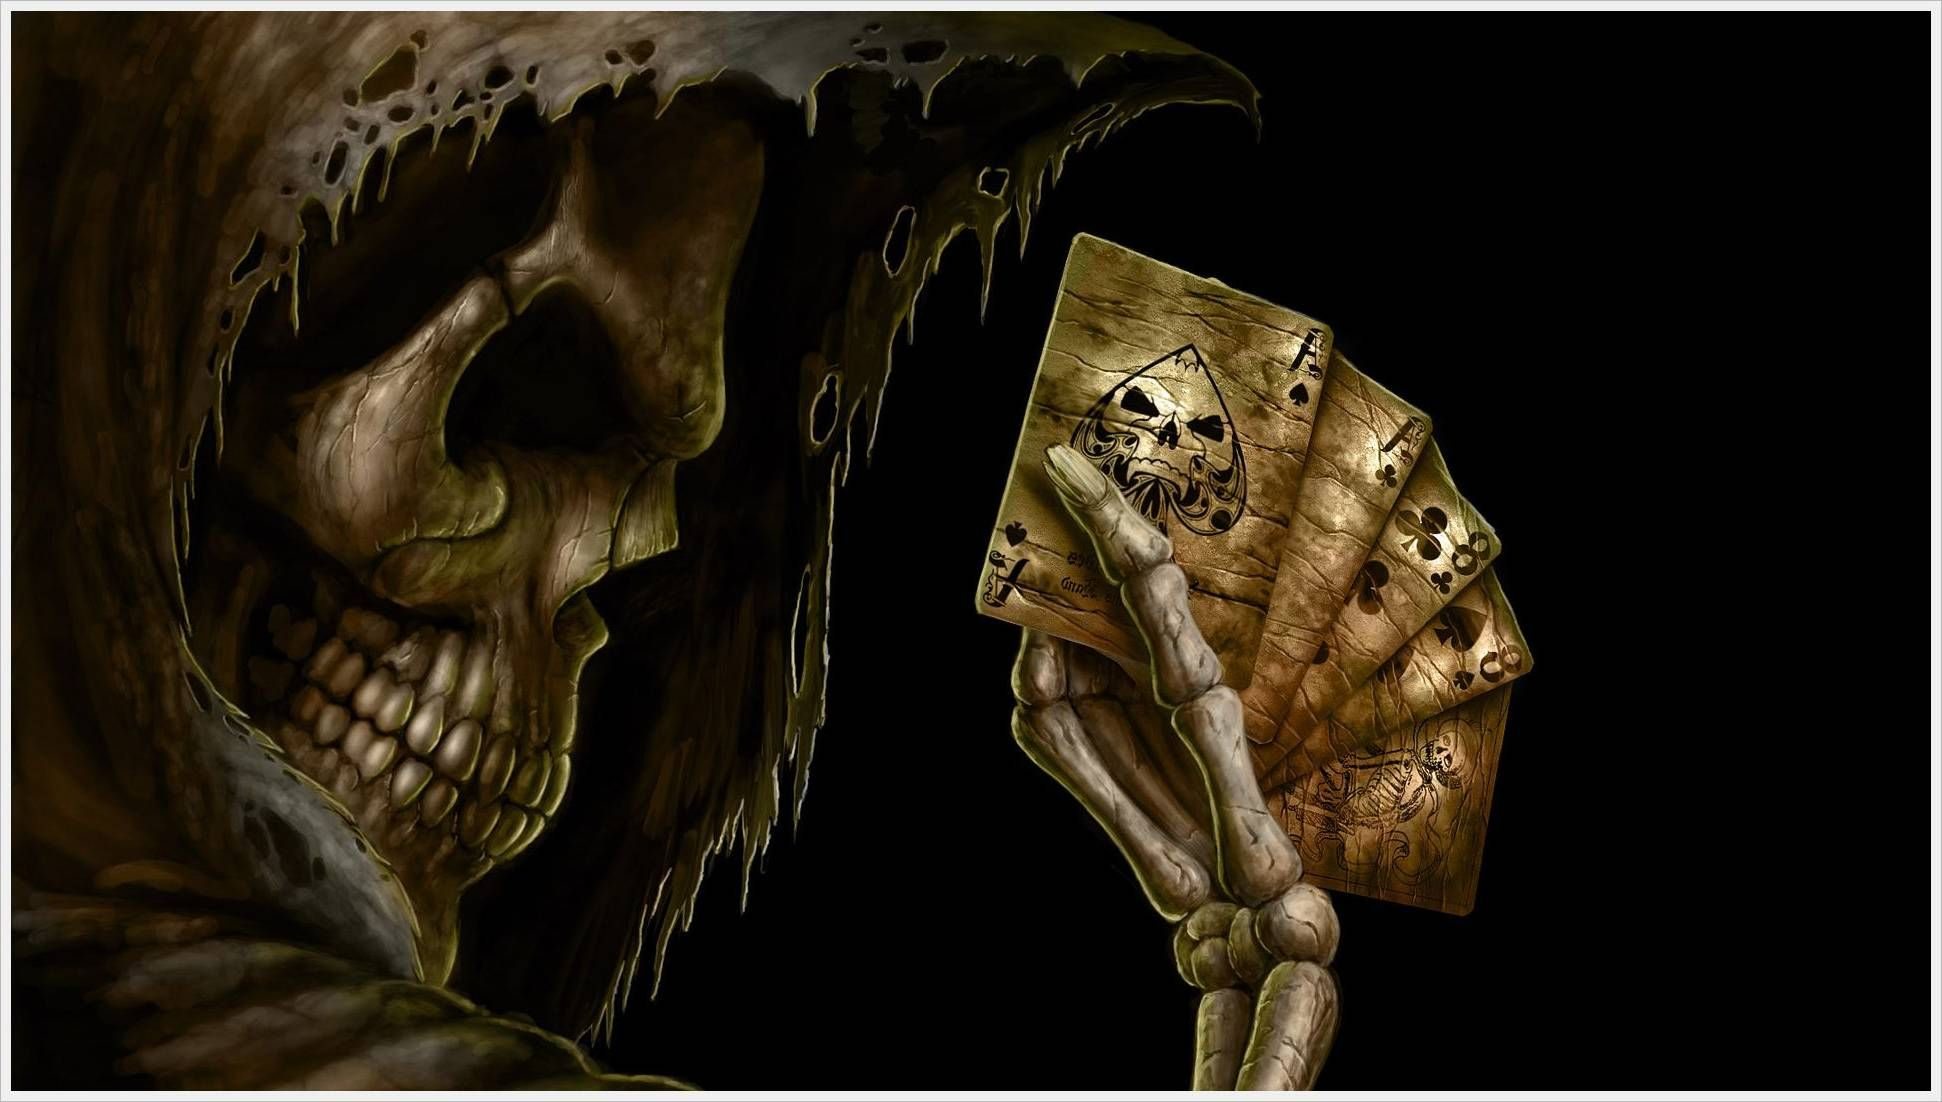 3d moving wallpaper animated horror skull 540x306 - Scary animated backgrounds ...